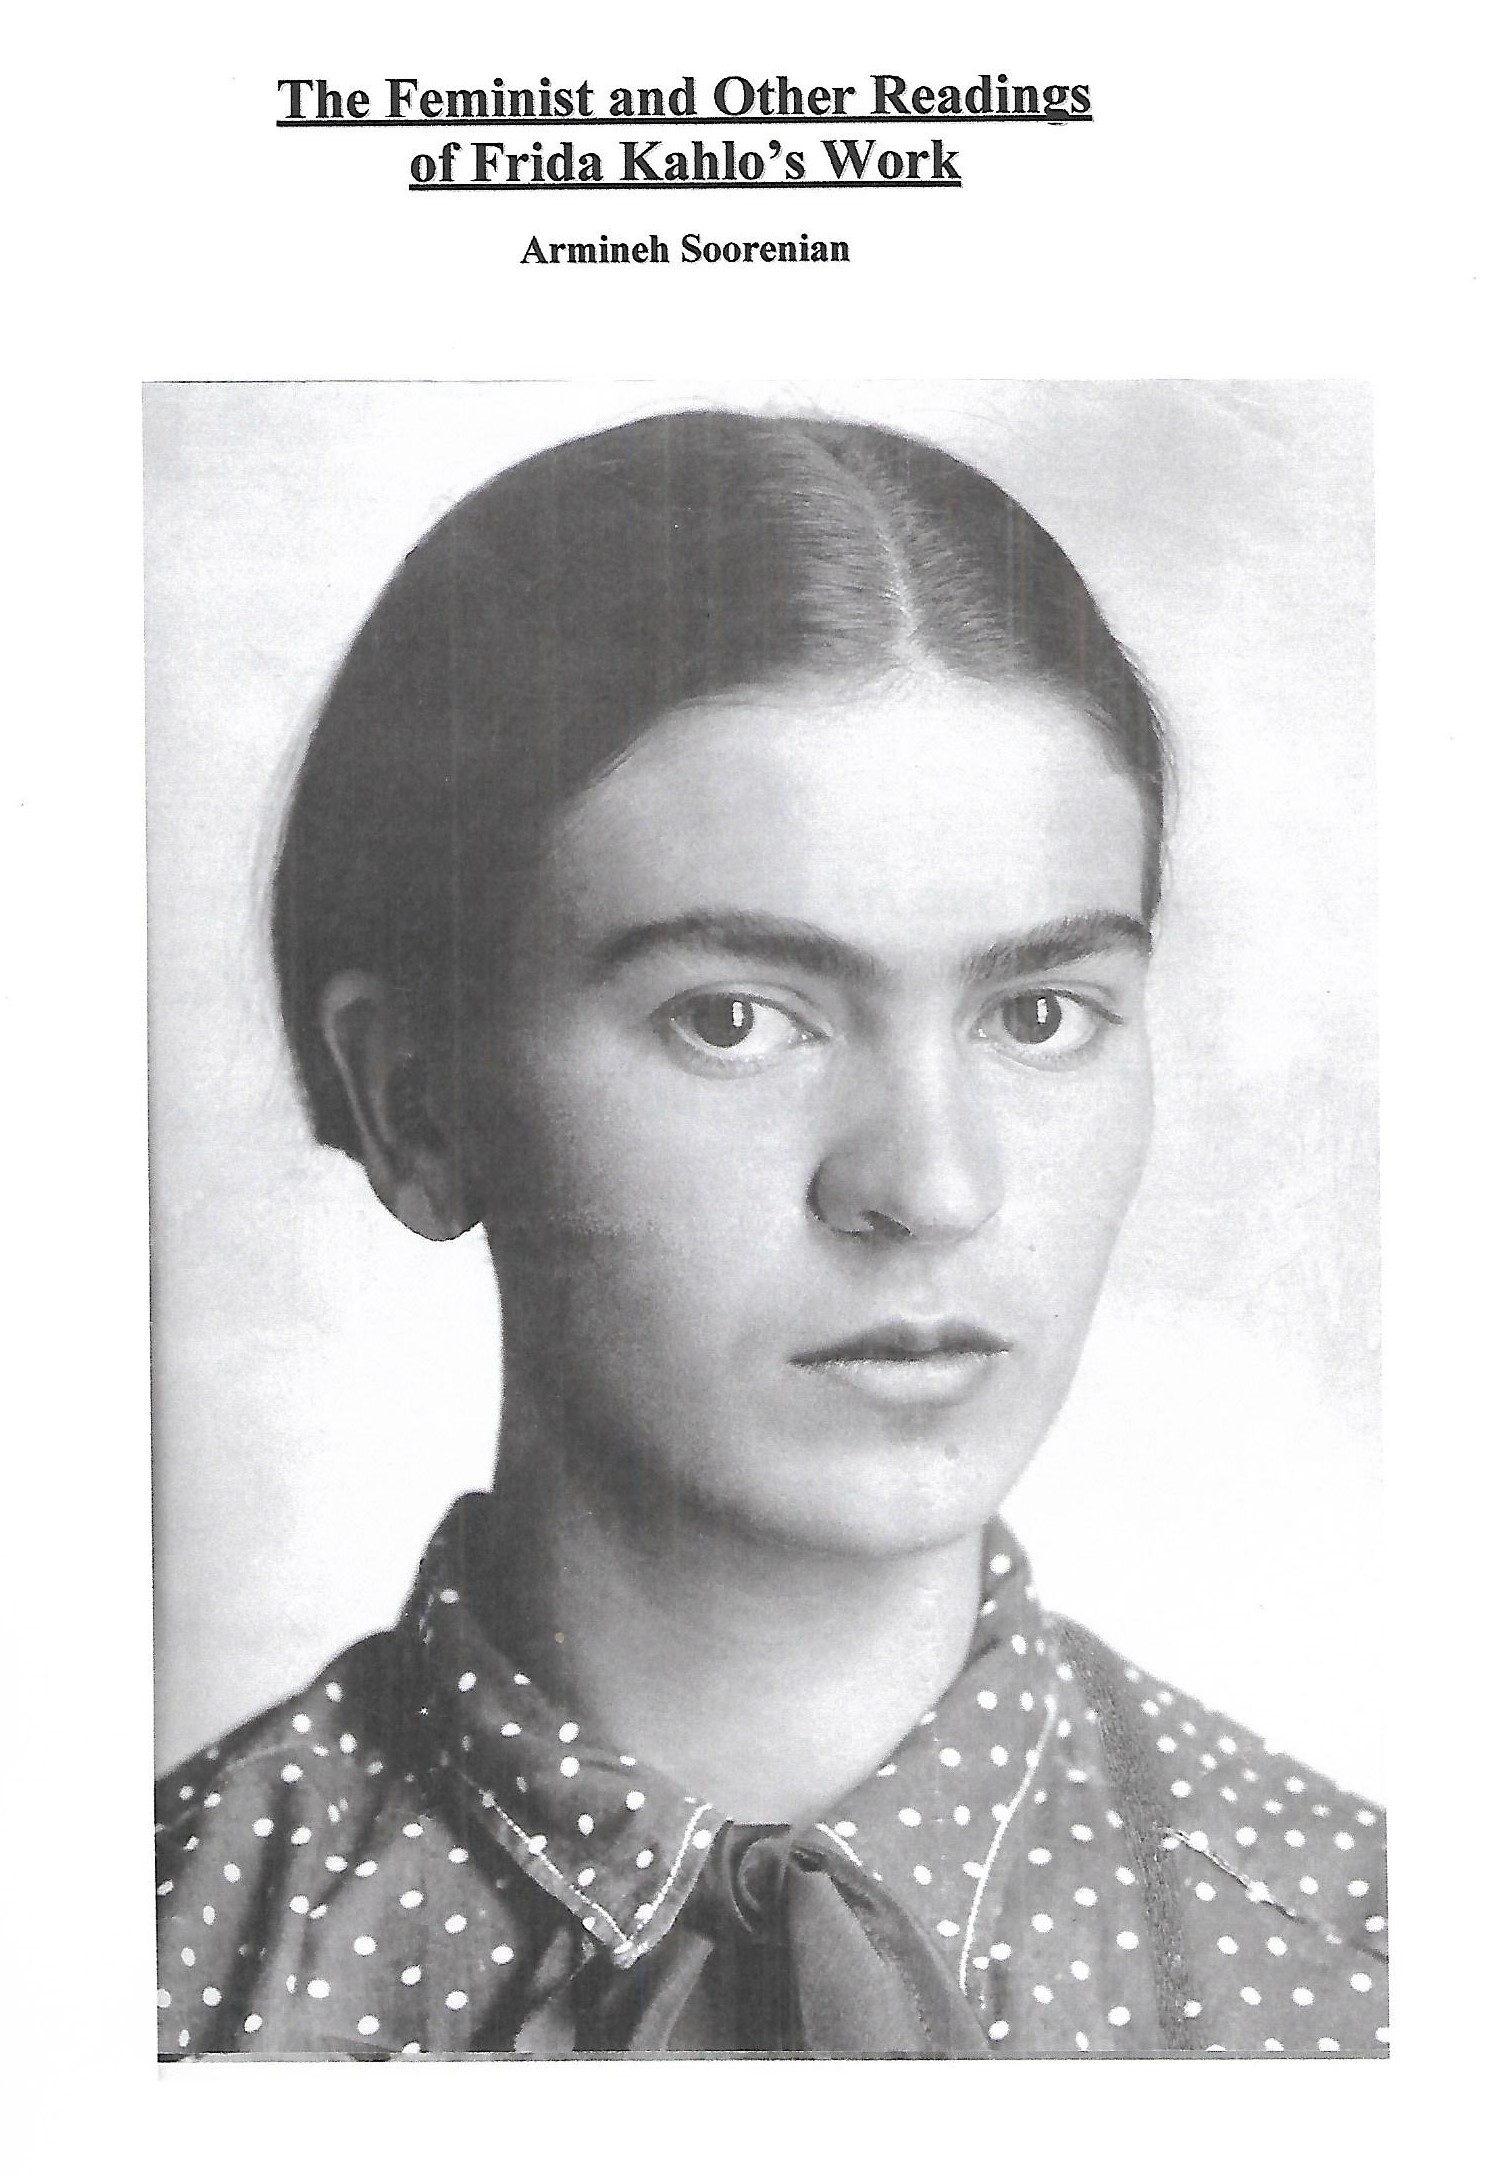 The Feminist and Other Readings of the Work of Frida Kahlo by Armineh Soorenian